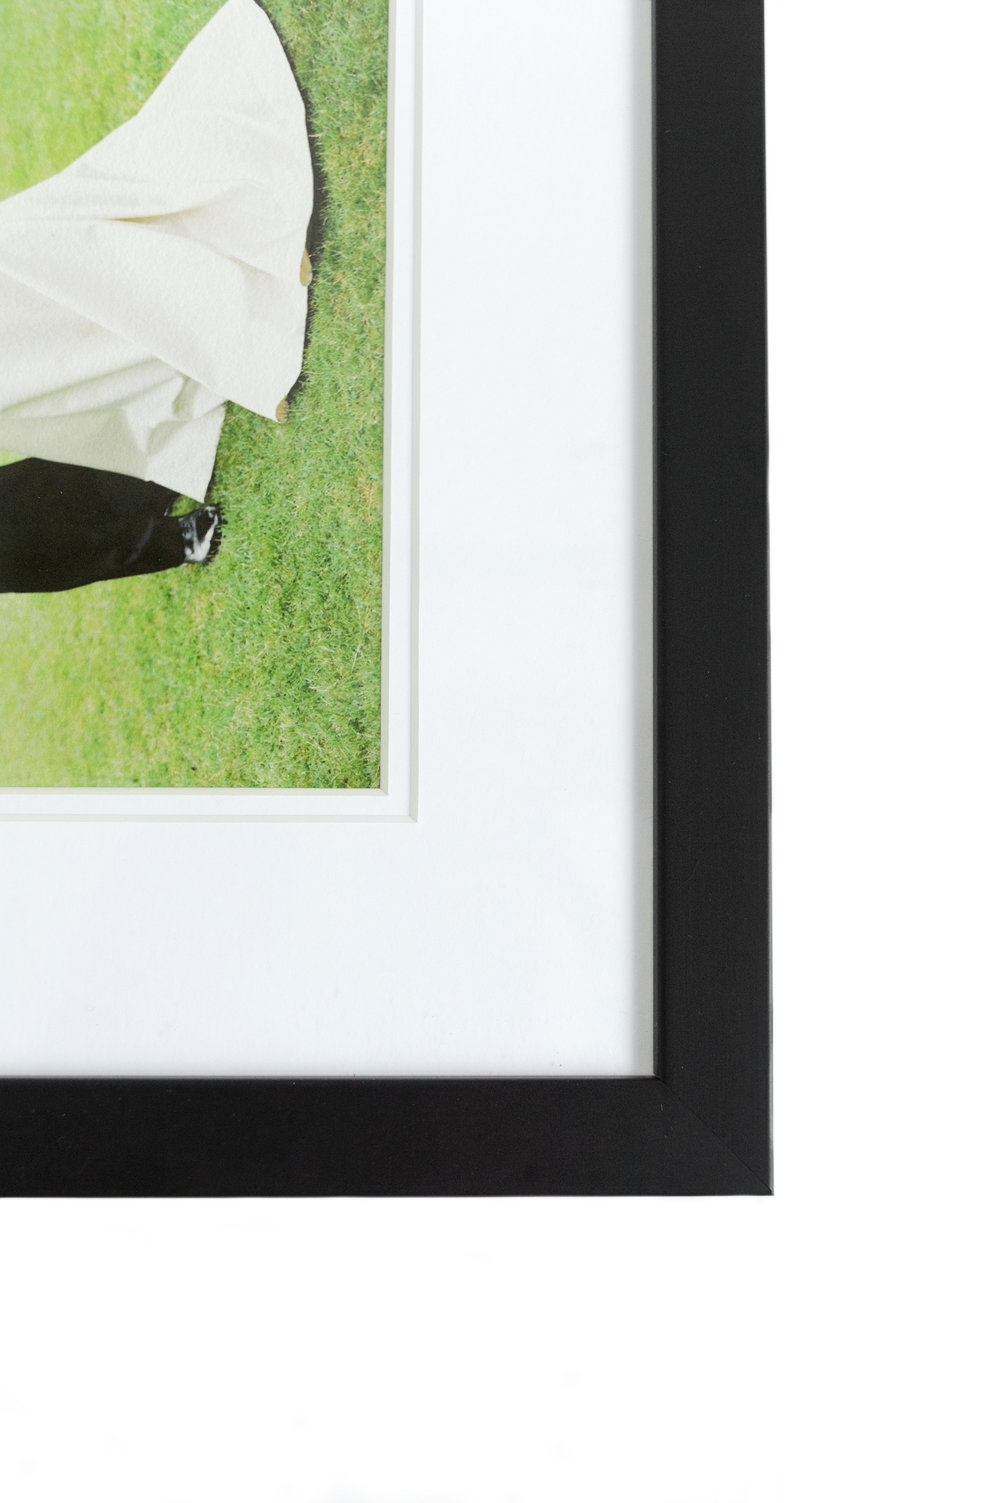 Copy of Braemar, black frame